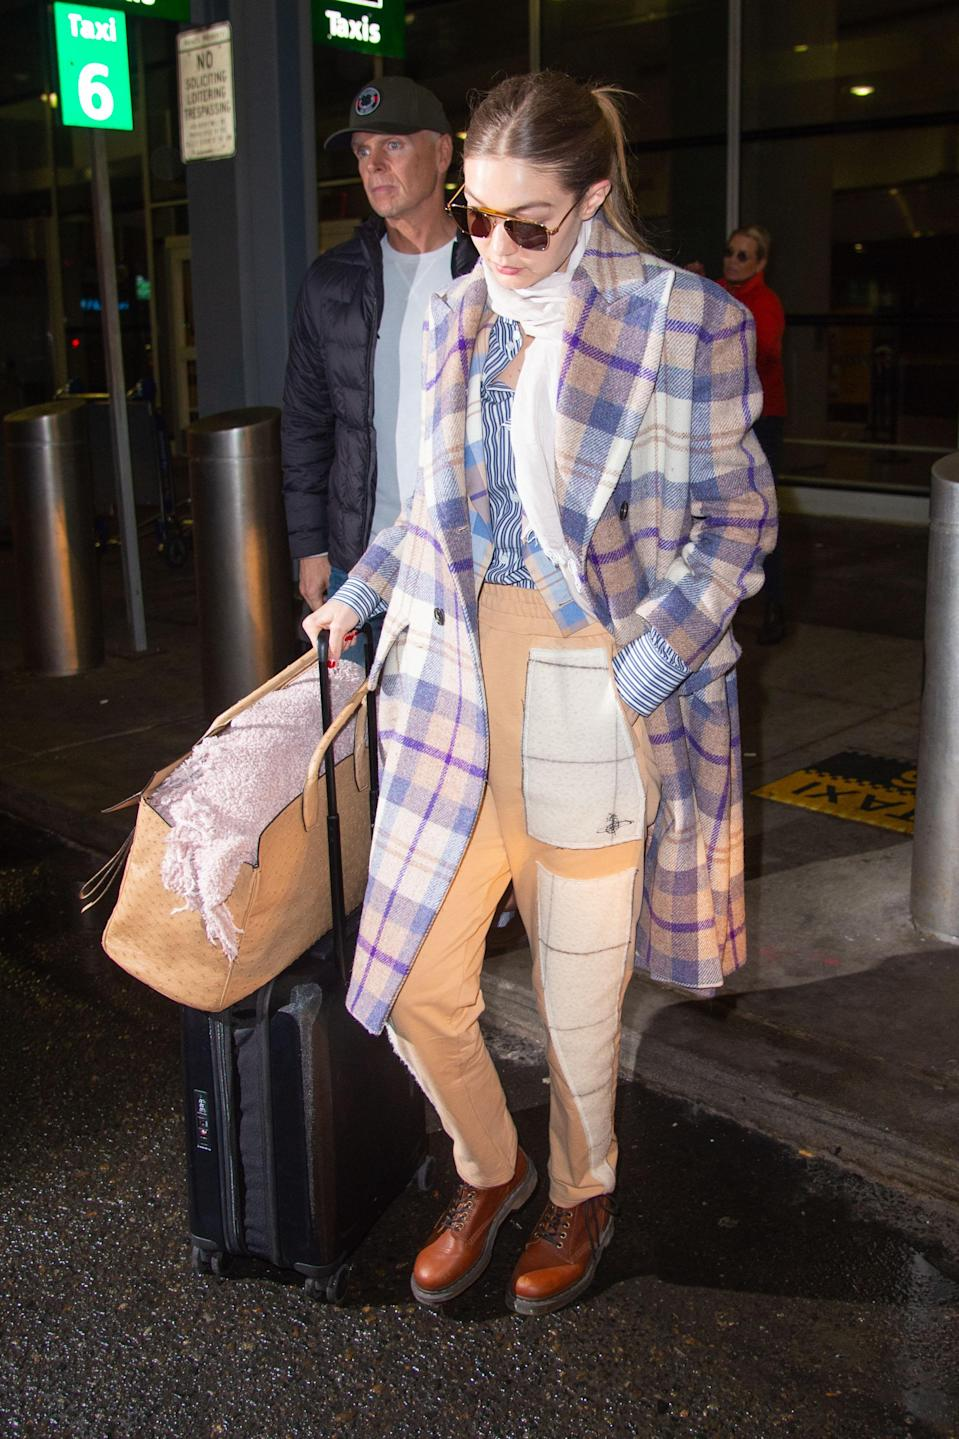 Gigi travels in style with the help of an oversized coat from Vivienne Westwood, an oversized bag from Salvatore Ferragamo, and, you guessed it, her go-to comfy Dr. Martens. Once you break your pair in, you'd not want to take them off either!